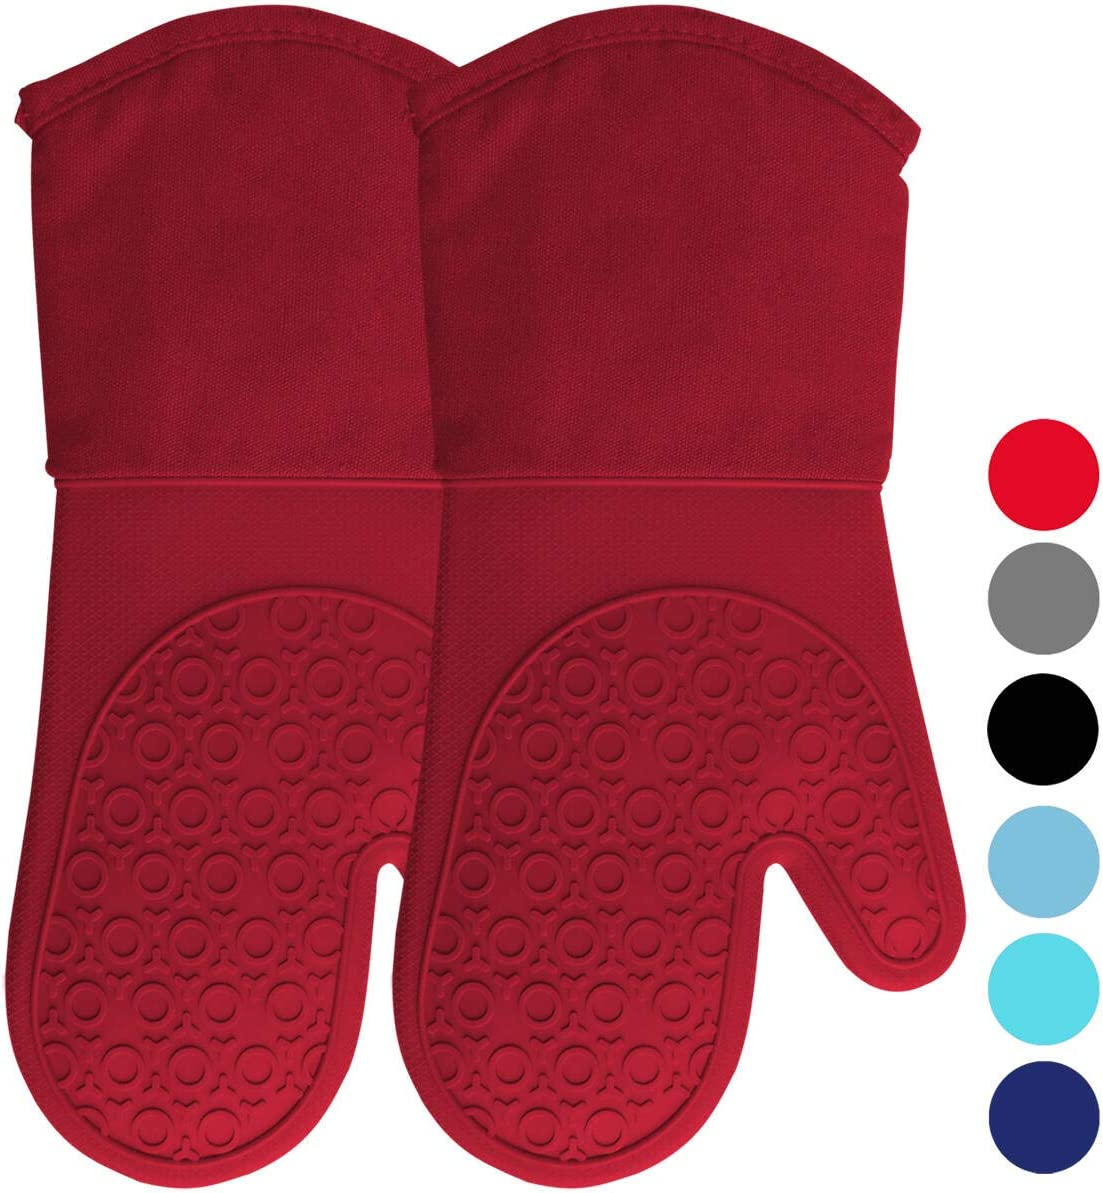 HOMWE Extra Long Professional Silicone Oven Mitt, Oven Mitts with Quilted Liner, Heat Resistant Pot Holders, Flexible Oven Gloves, 1 Pair, 13.7 Inch, Empire Red